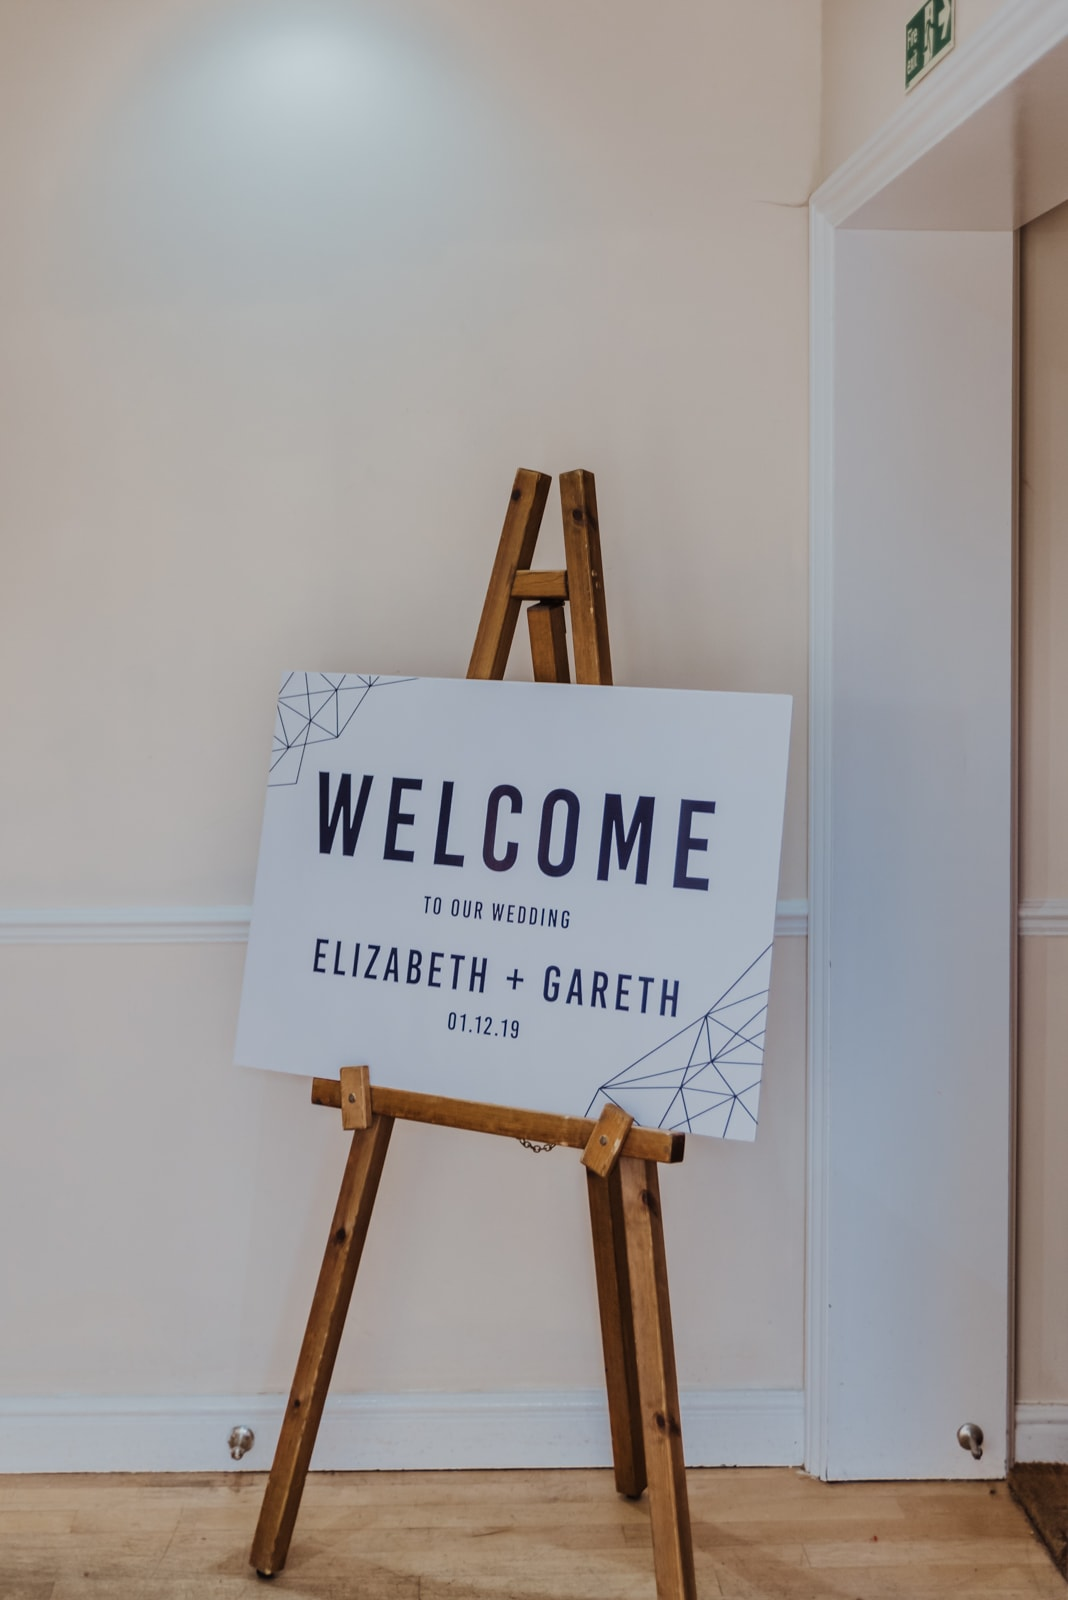 wedding welcome sign Roshni photography The Milling Barn, Bluntswood Hall, Throcking wedding photographer